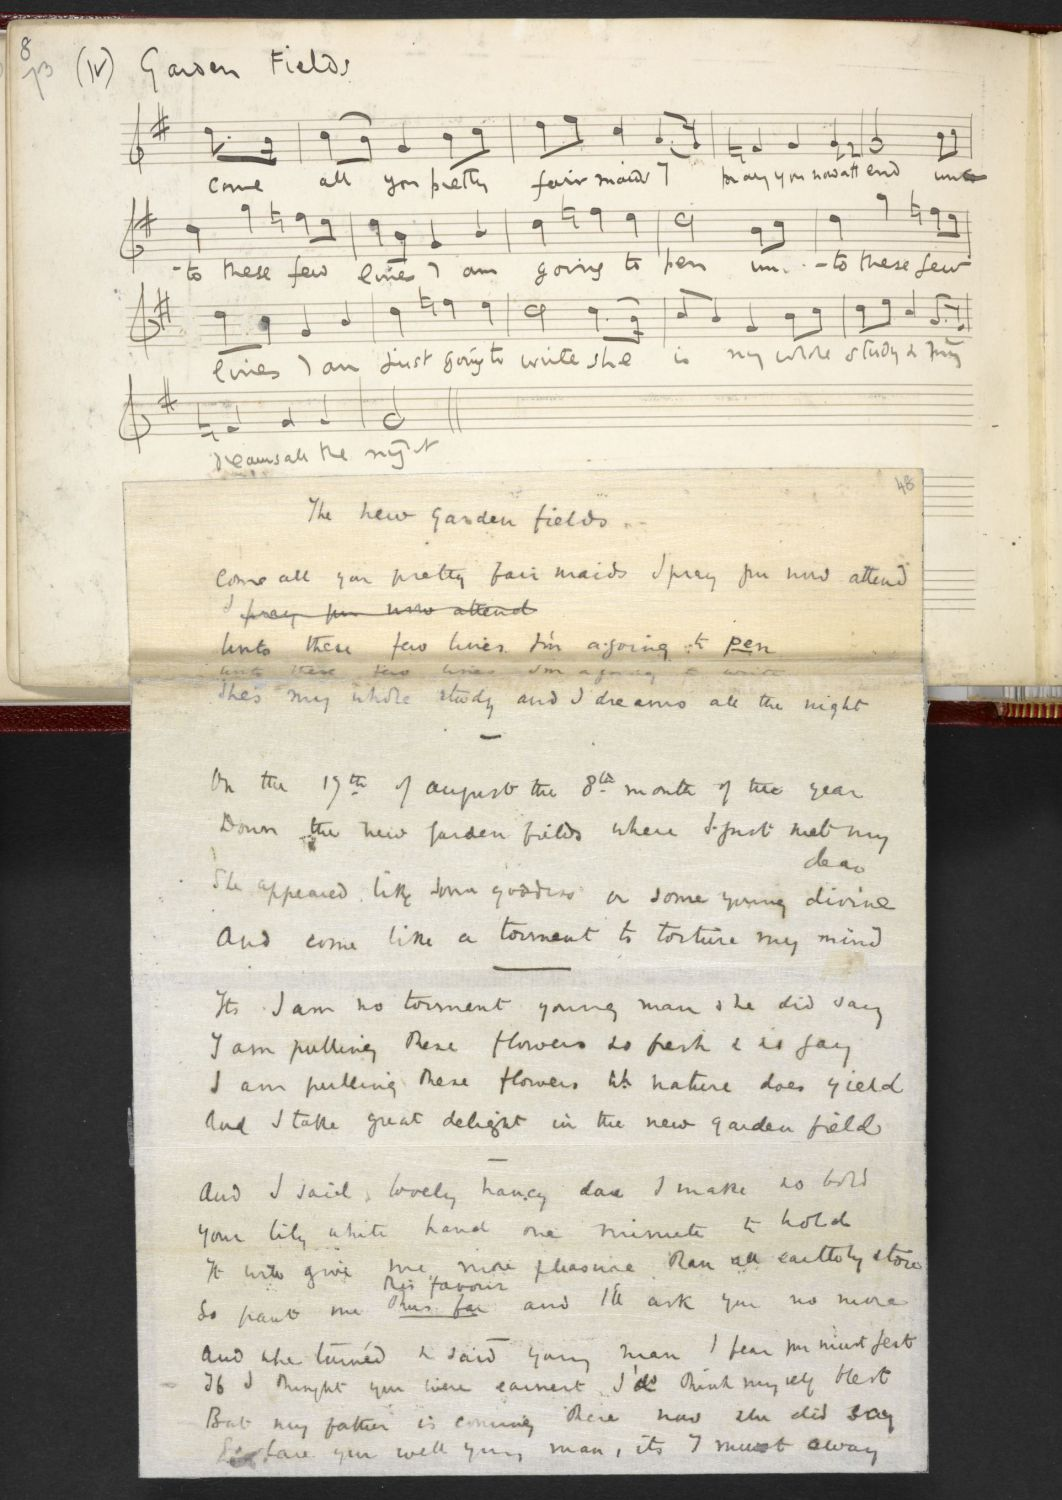 New Garden Fields, as sung by Mr Broomfield of Essex. From the Ralph Vaughan Williams Manuscript Collection, via the Full English.